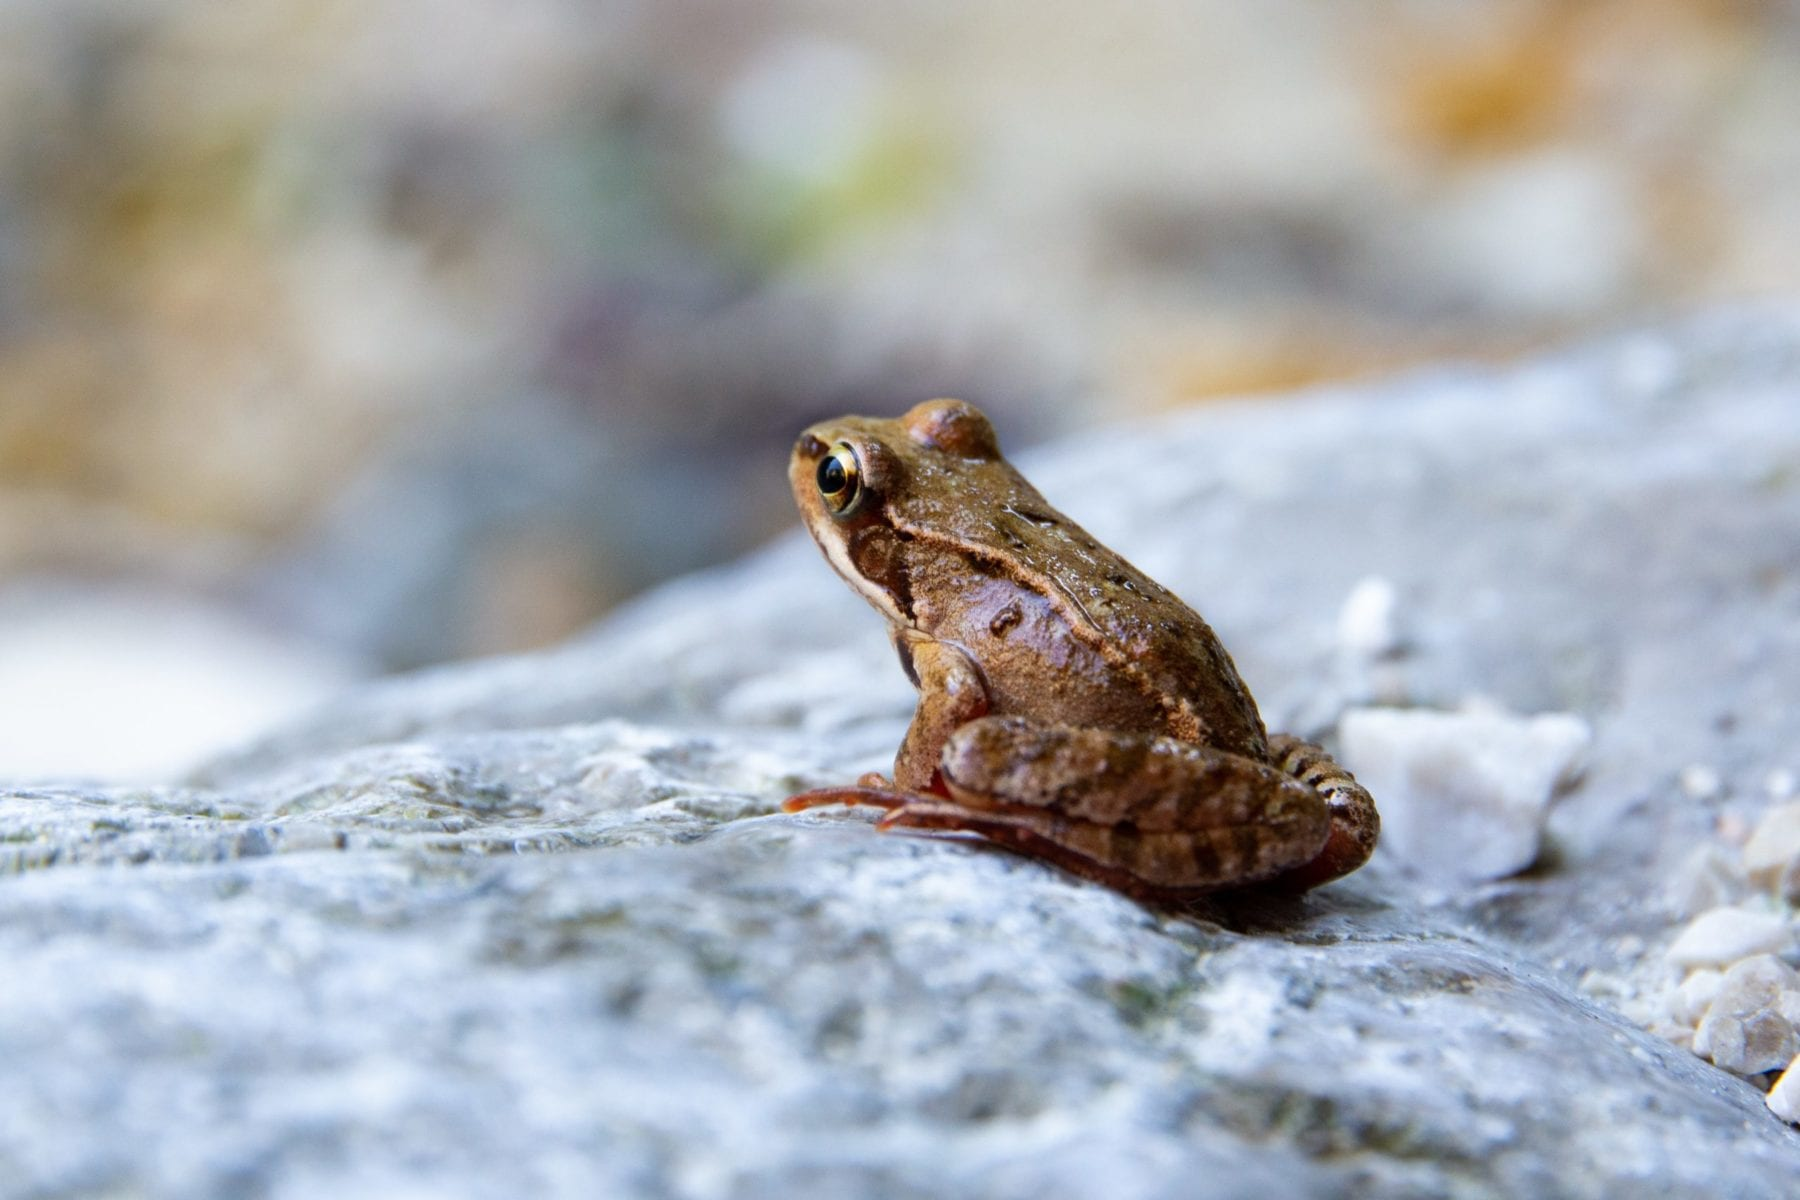 Resources for learning about amphibians